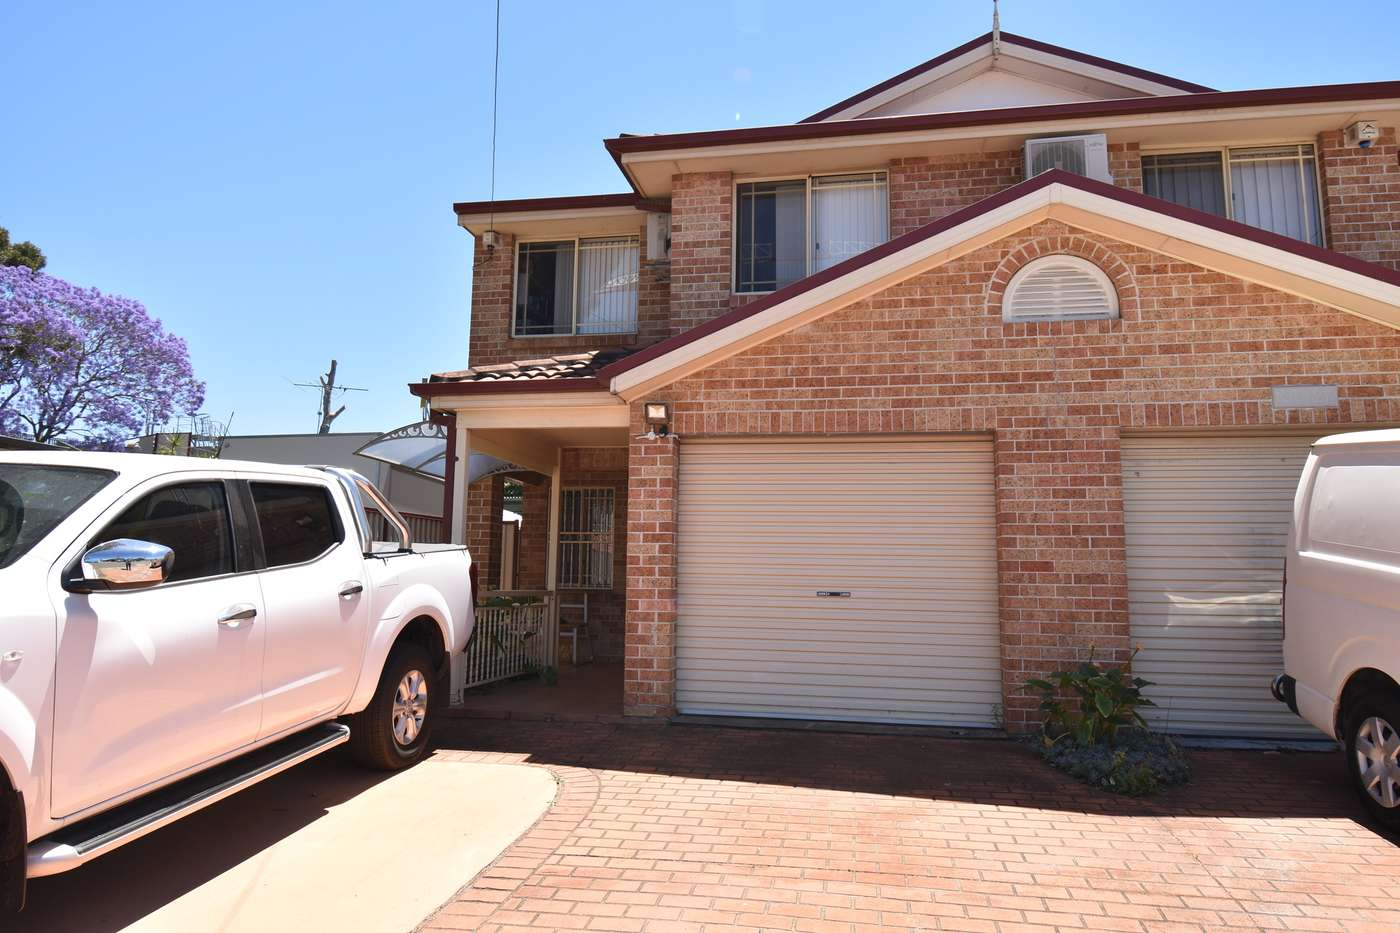 Main view of Homely semidetached listing, 129 Kiora Street, Canley Heights, NSW 2166